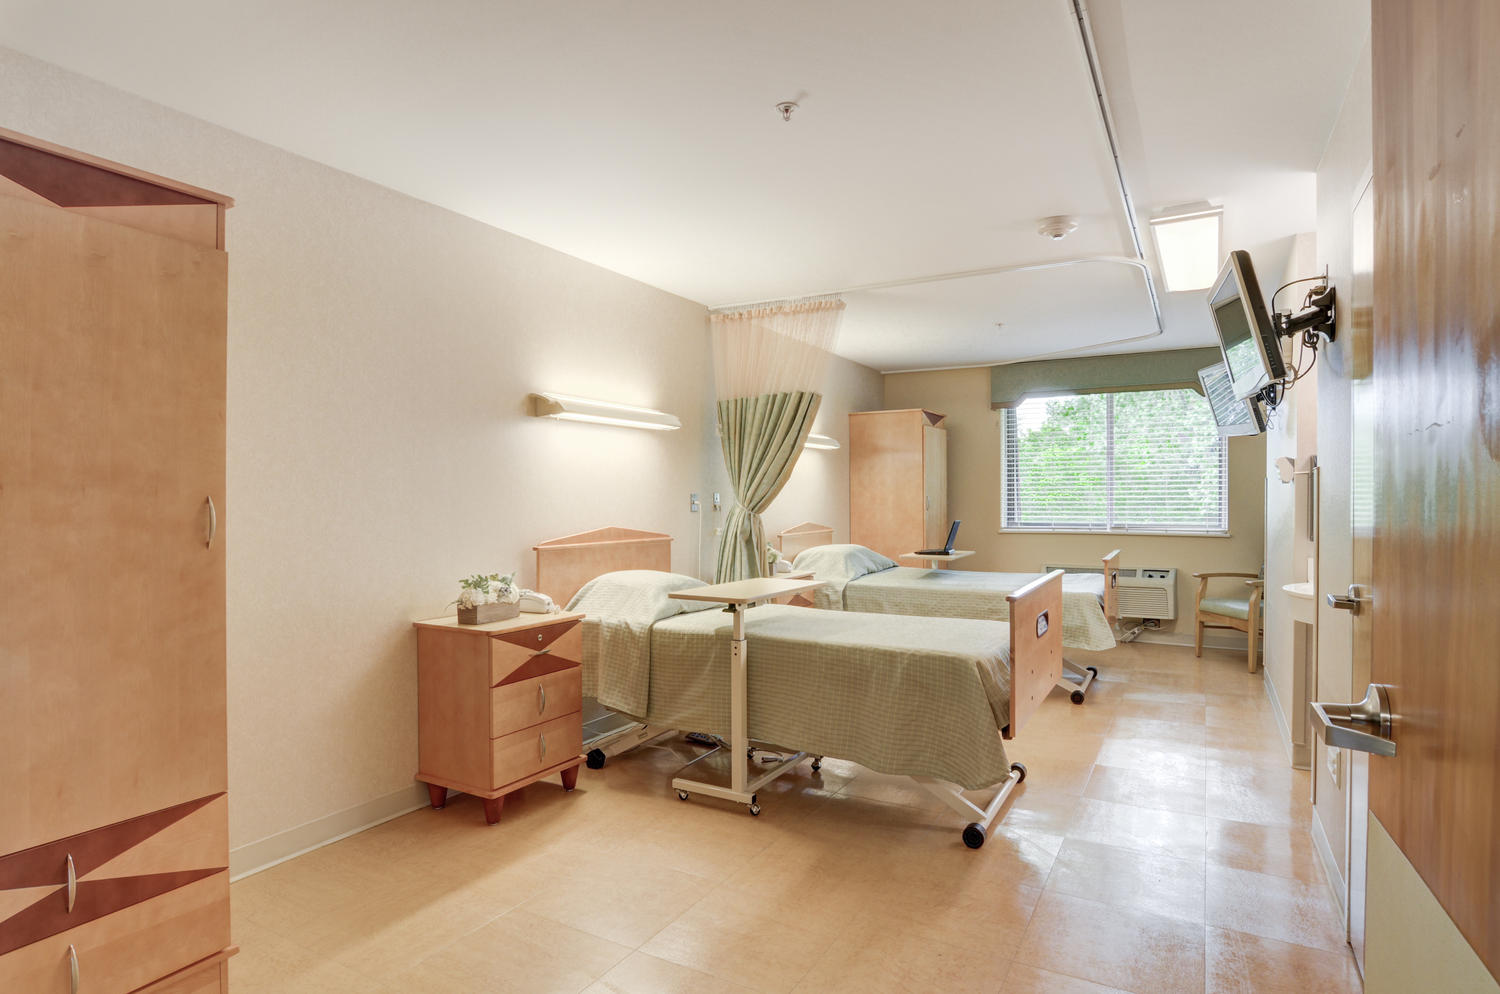 Manorcare Health Large 020 Semi Private Patient Room 1500X994 72Dpi